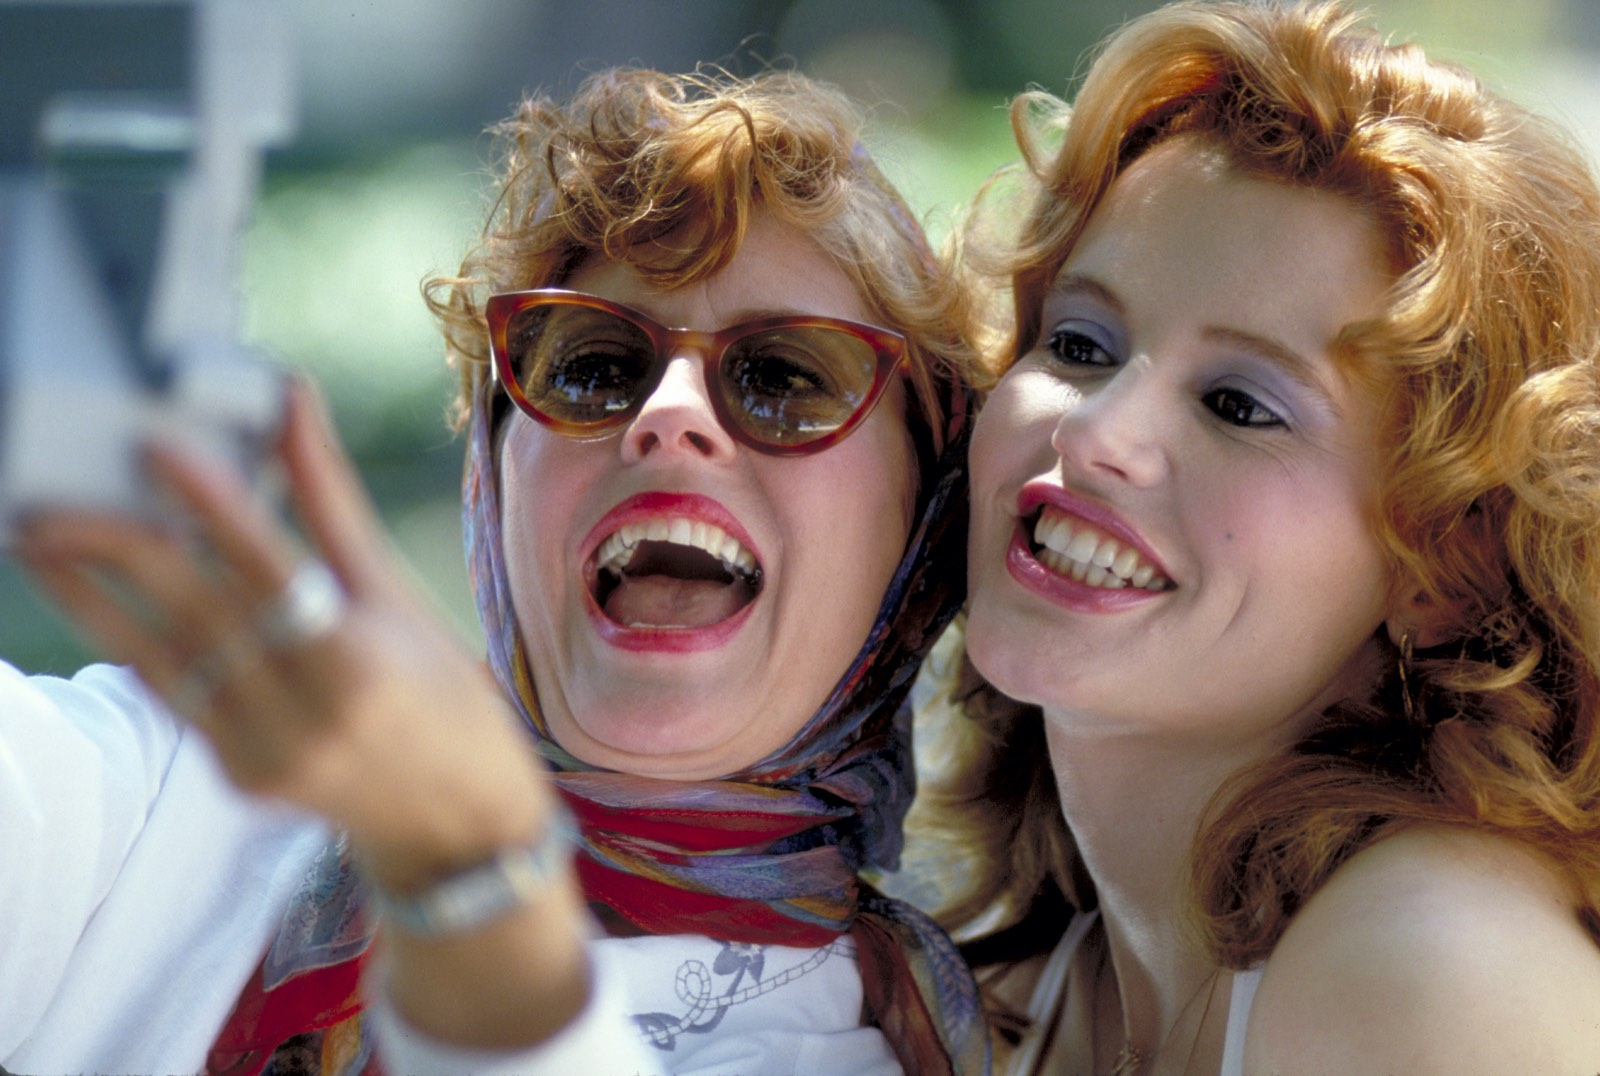 Cinemoments: Thelma & Louise